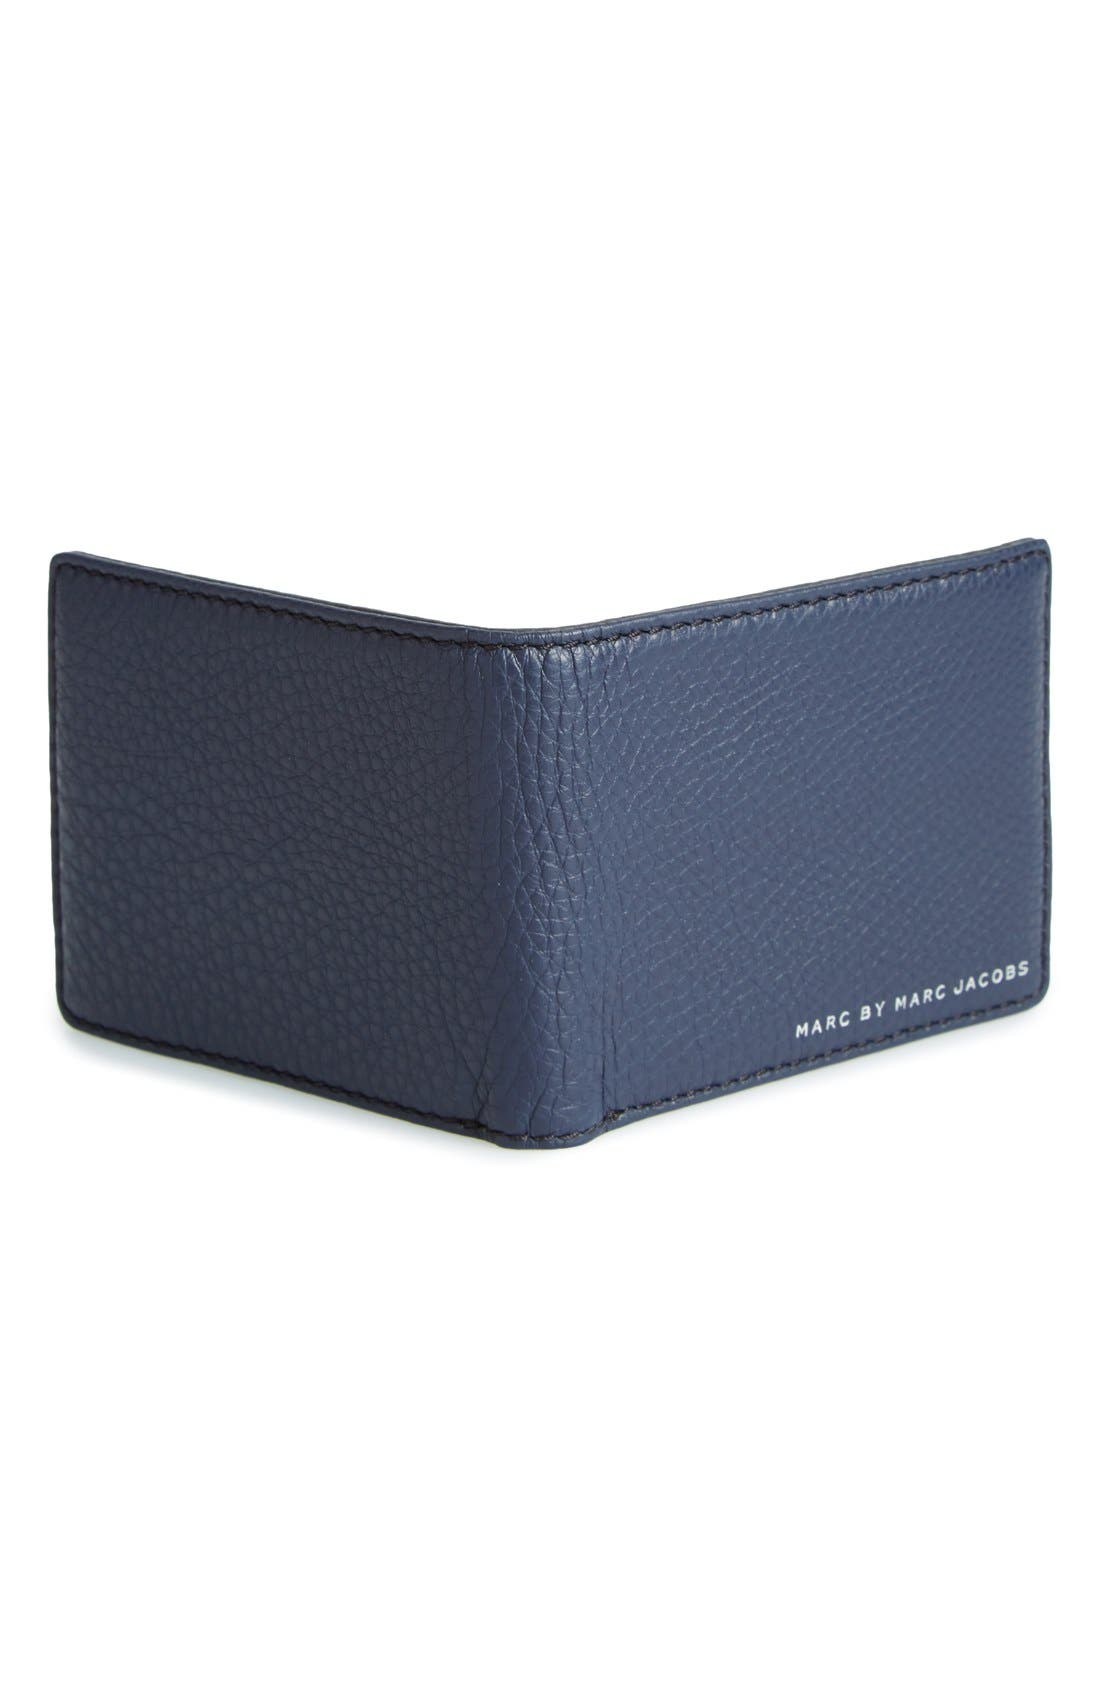 'Martin' Leather Bifold Wallet,                             Alternate thumbnail 3, color,                             495